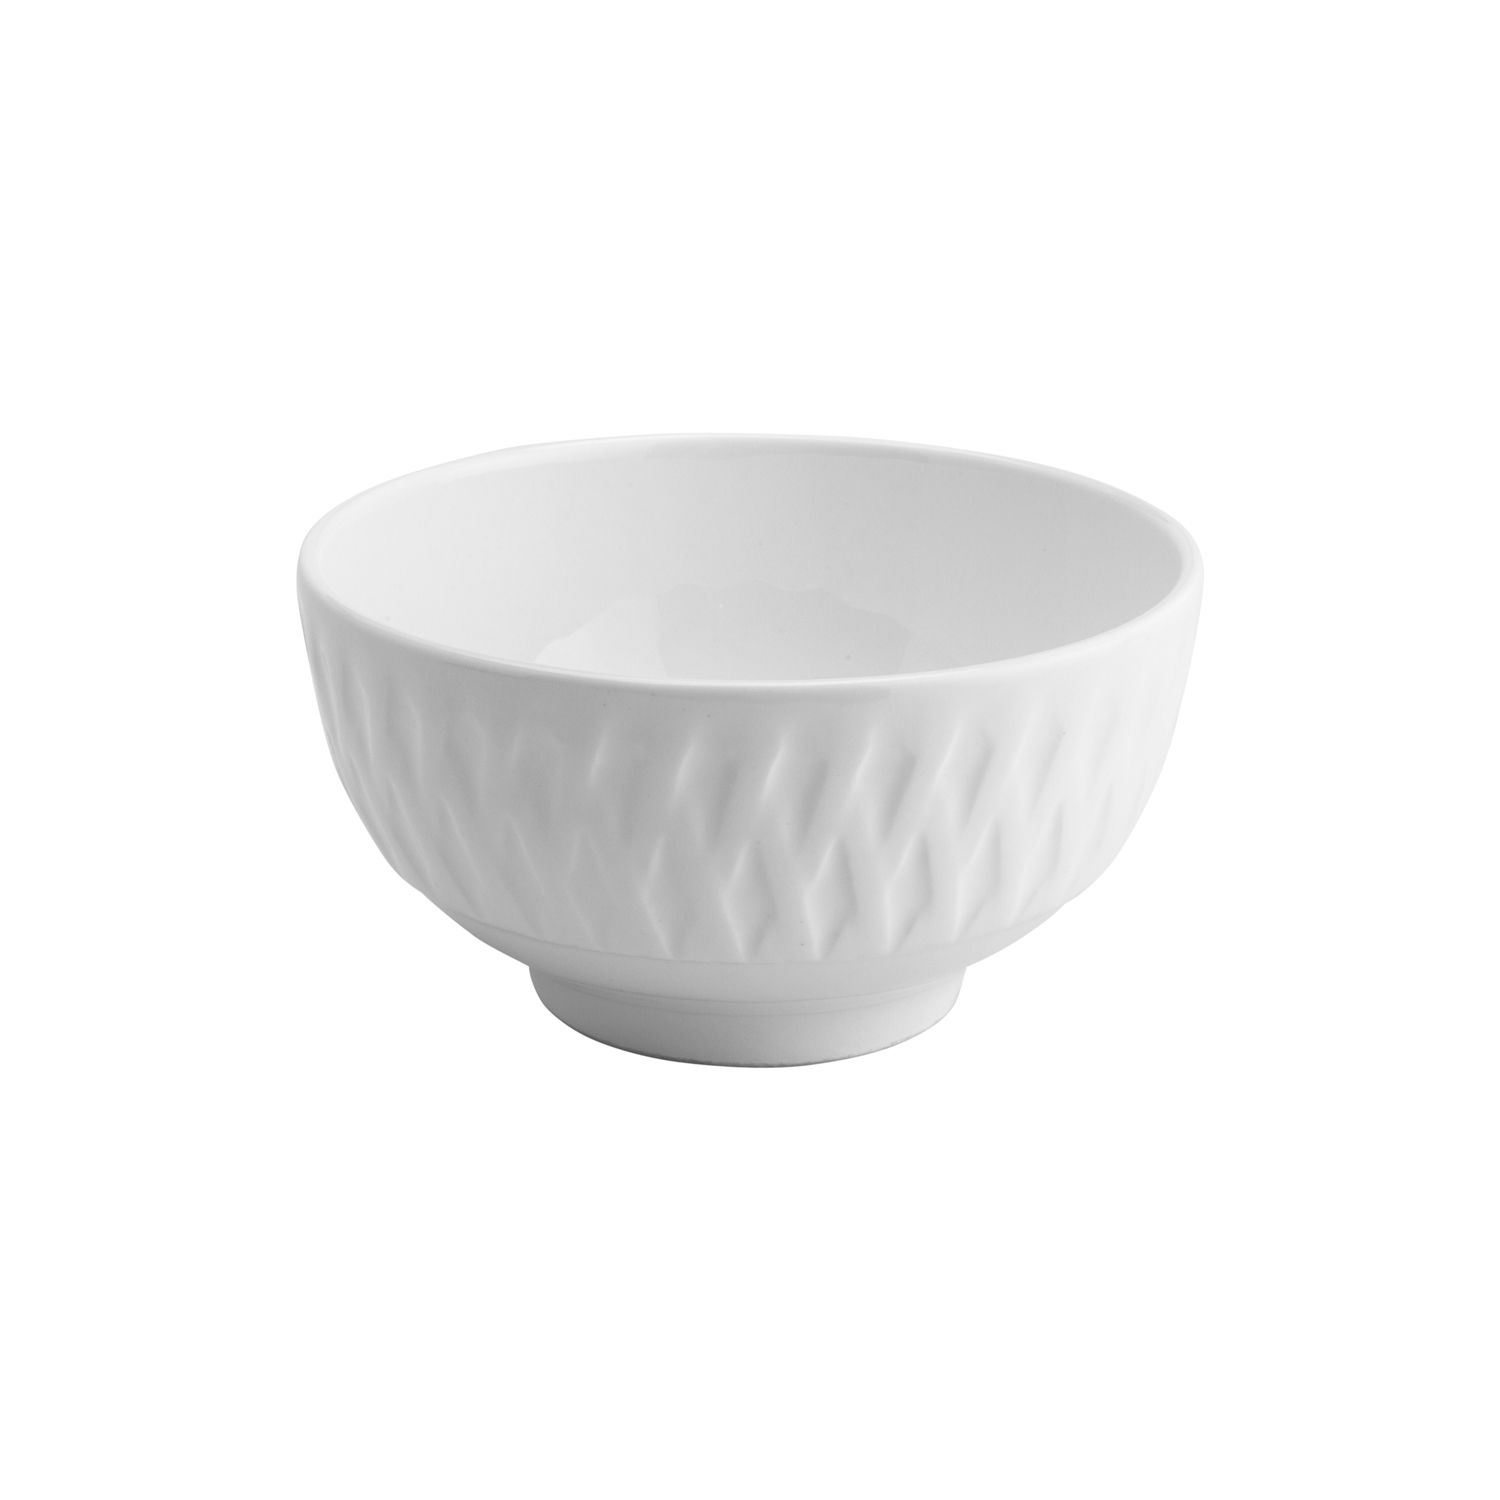 Bowl De Porcelana Balloon Branco - Lyor